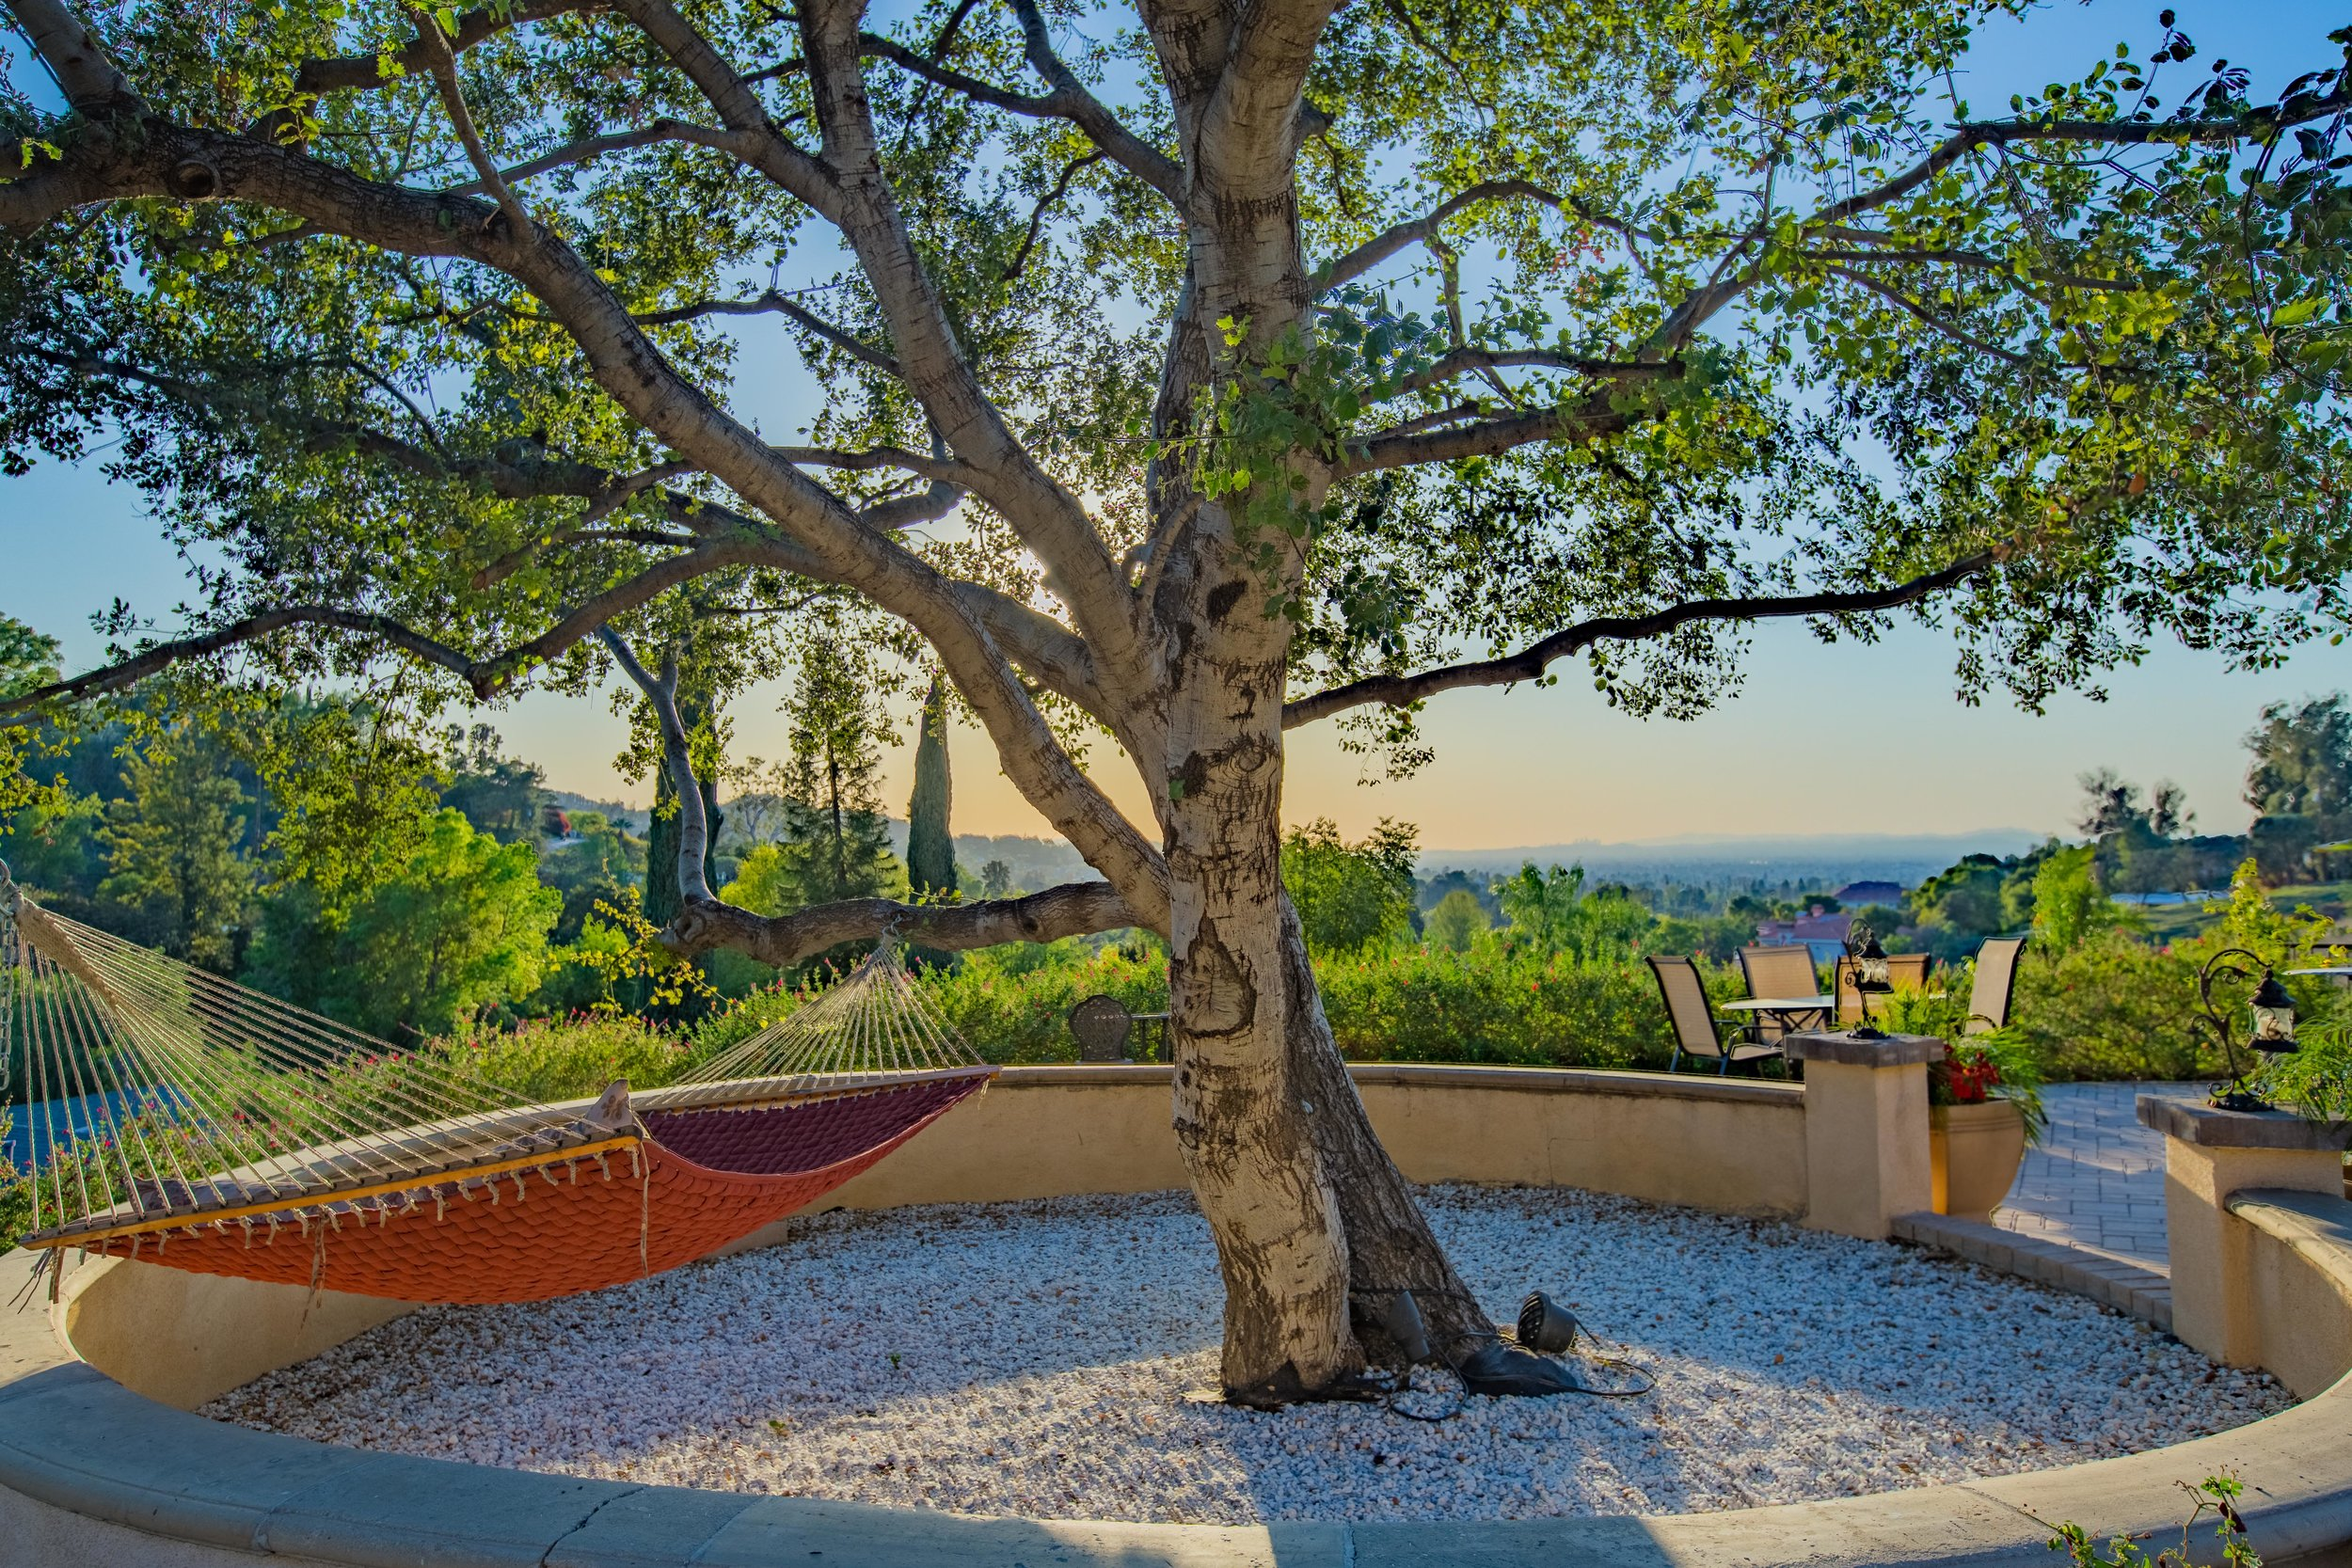 Real Estate Photography of Hammock